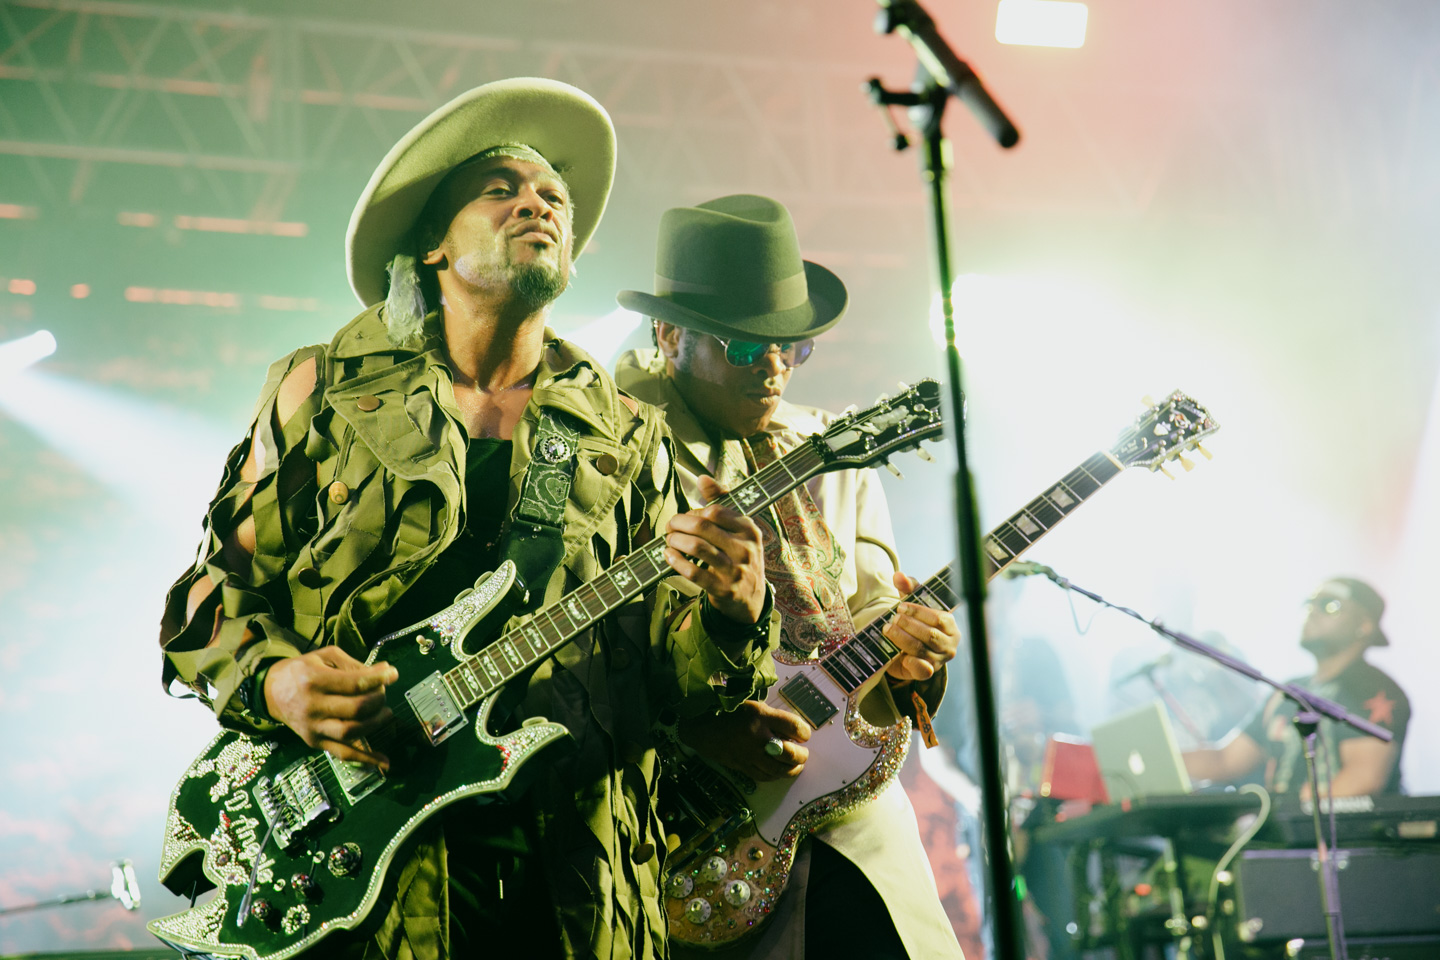 D'Angelo and the Vanguard at Bonnaroo 2015